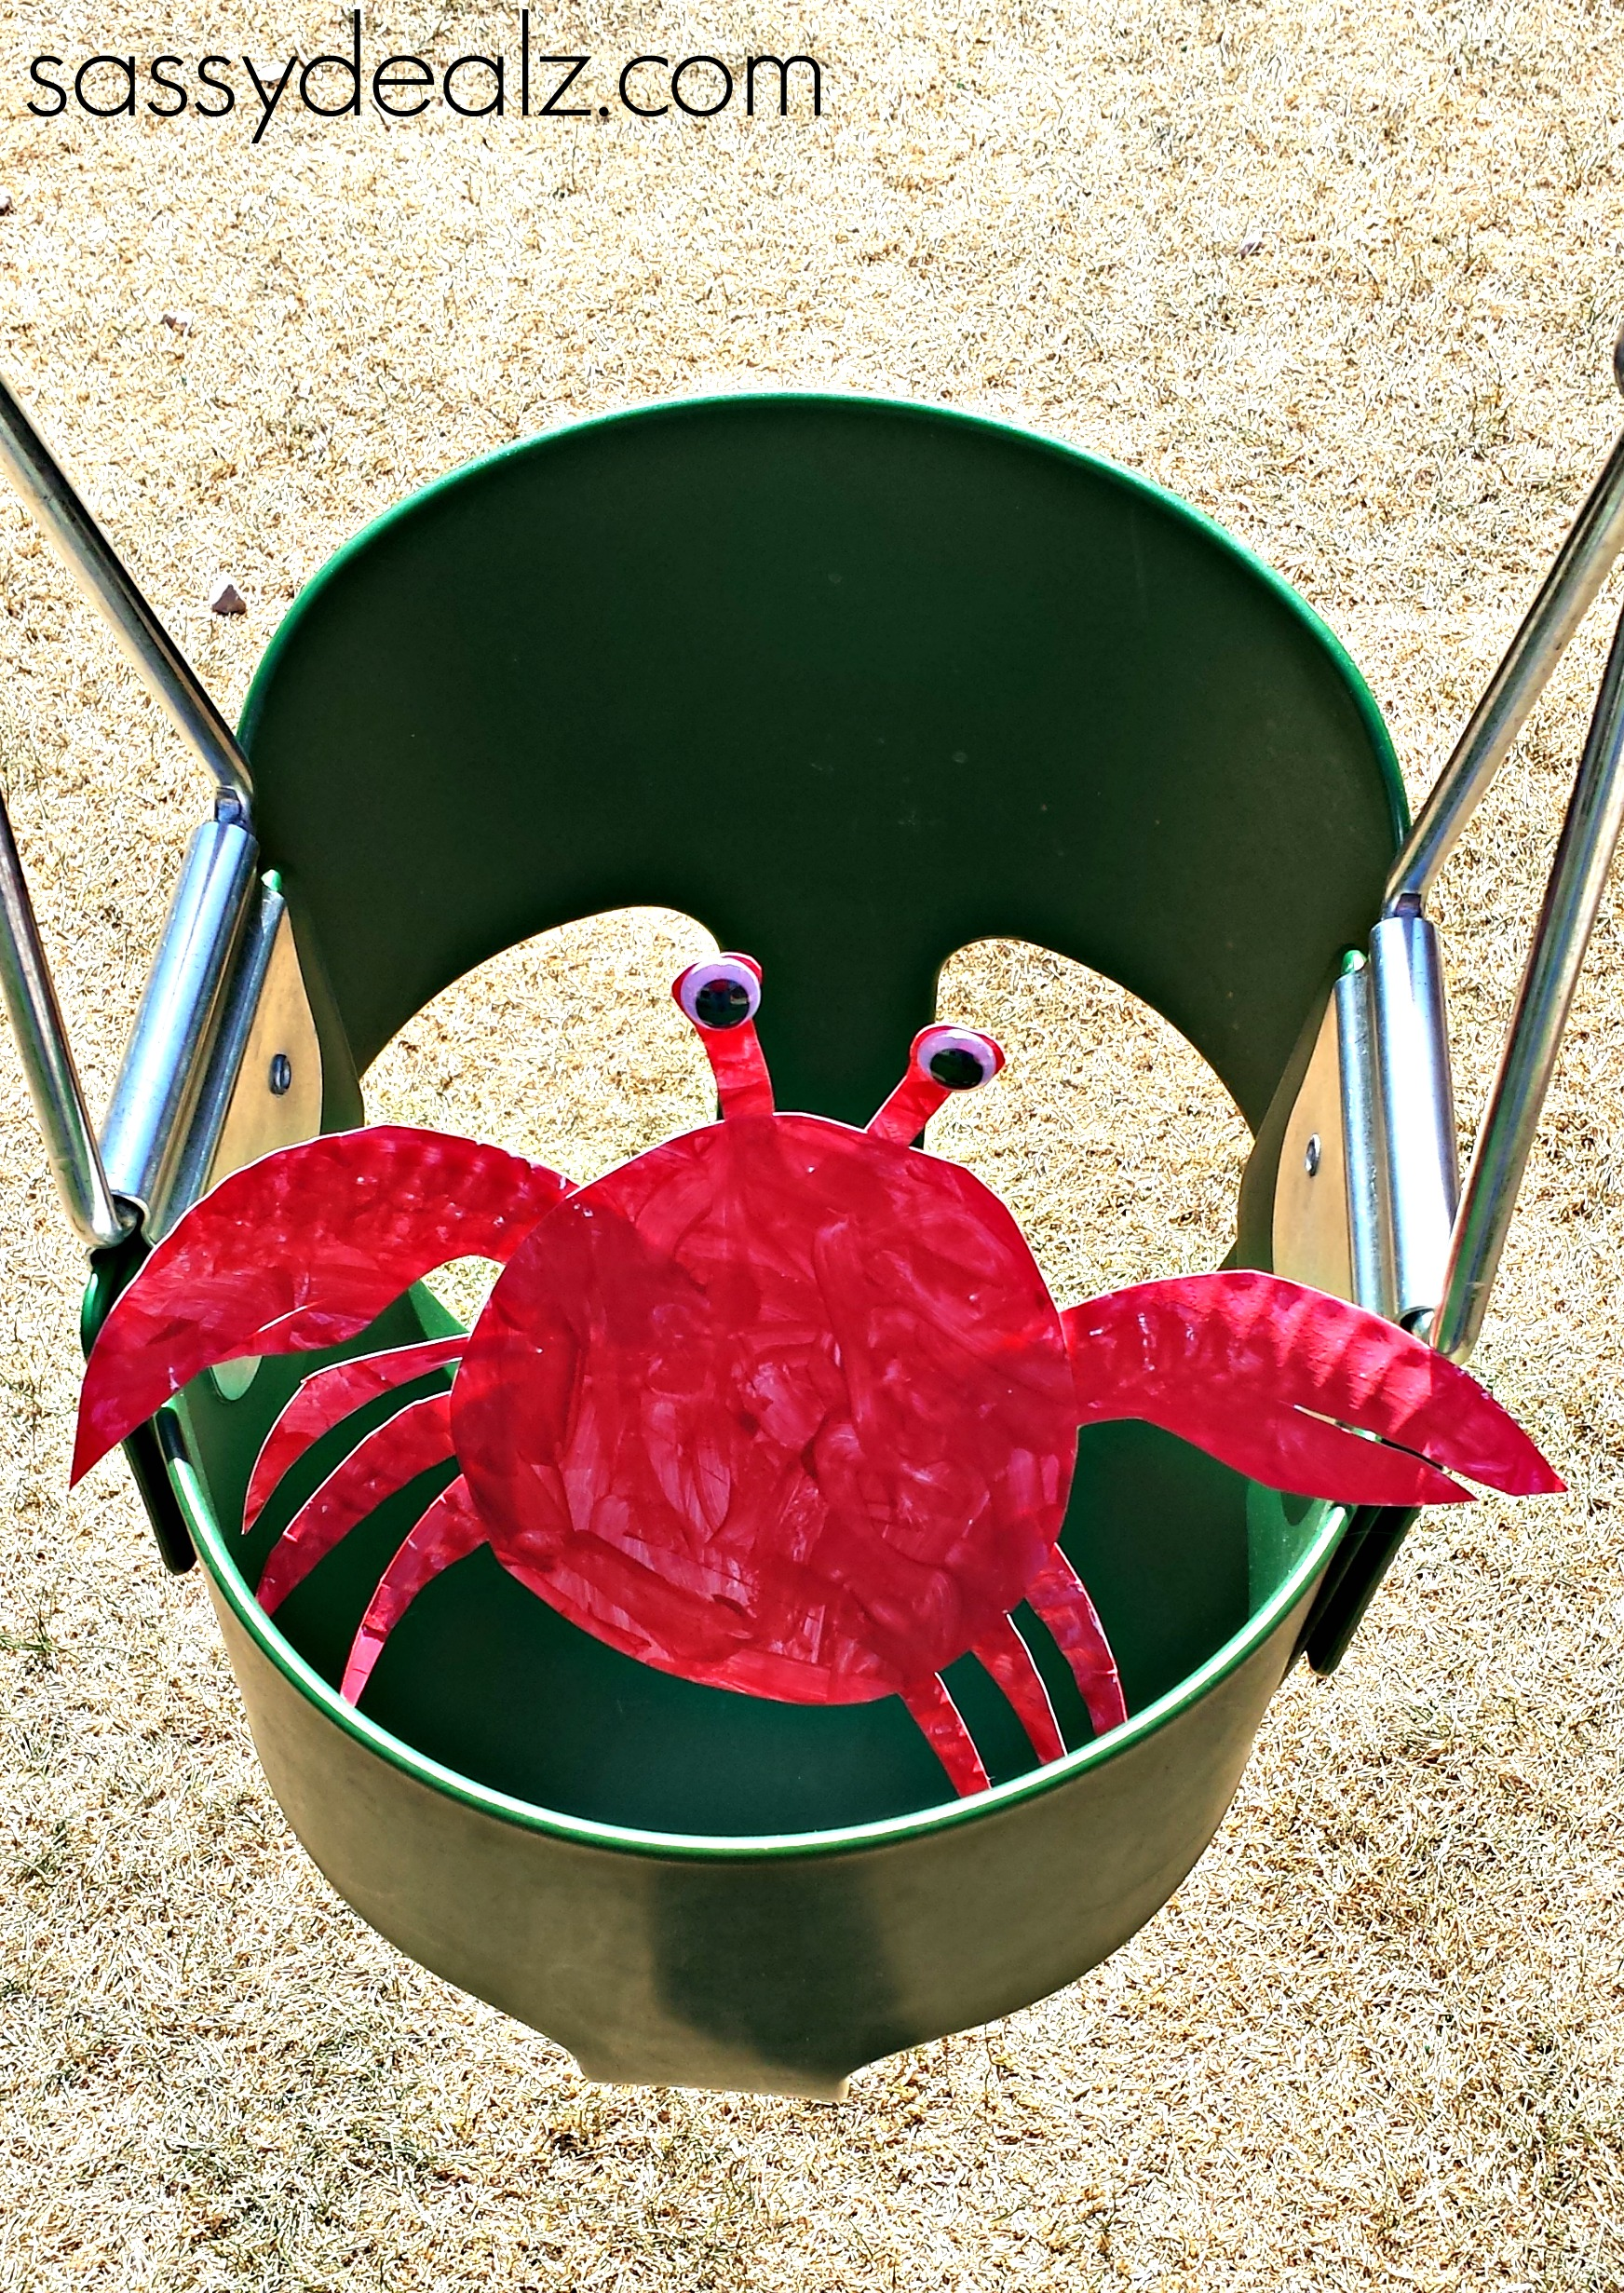 crab-paper-plate-craft & Paper Plate Crab Craft For Kids - Crafty Morning